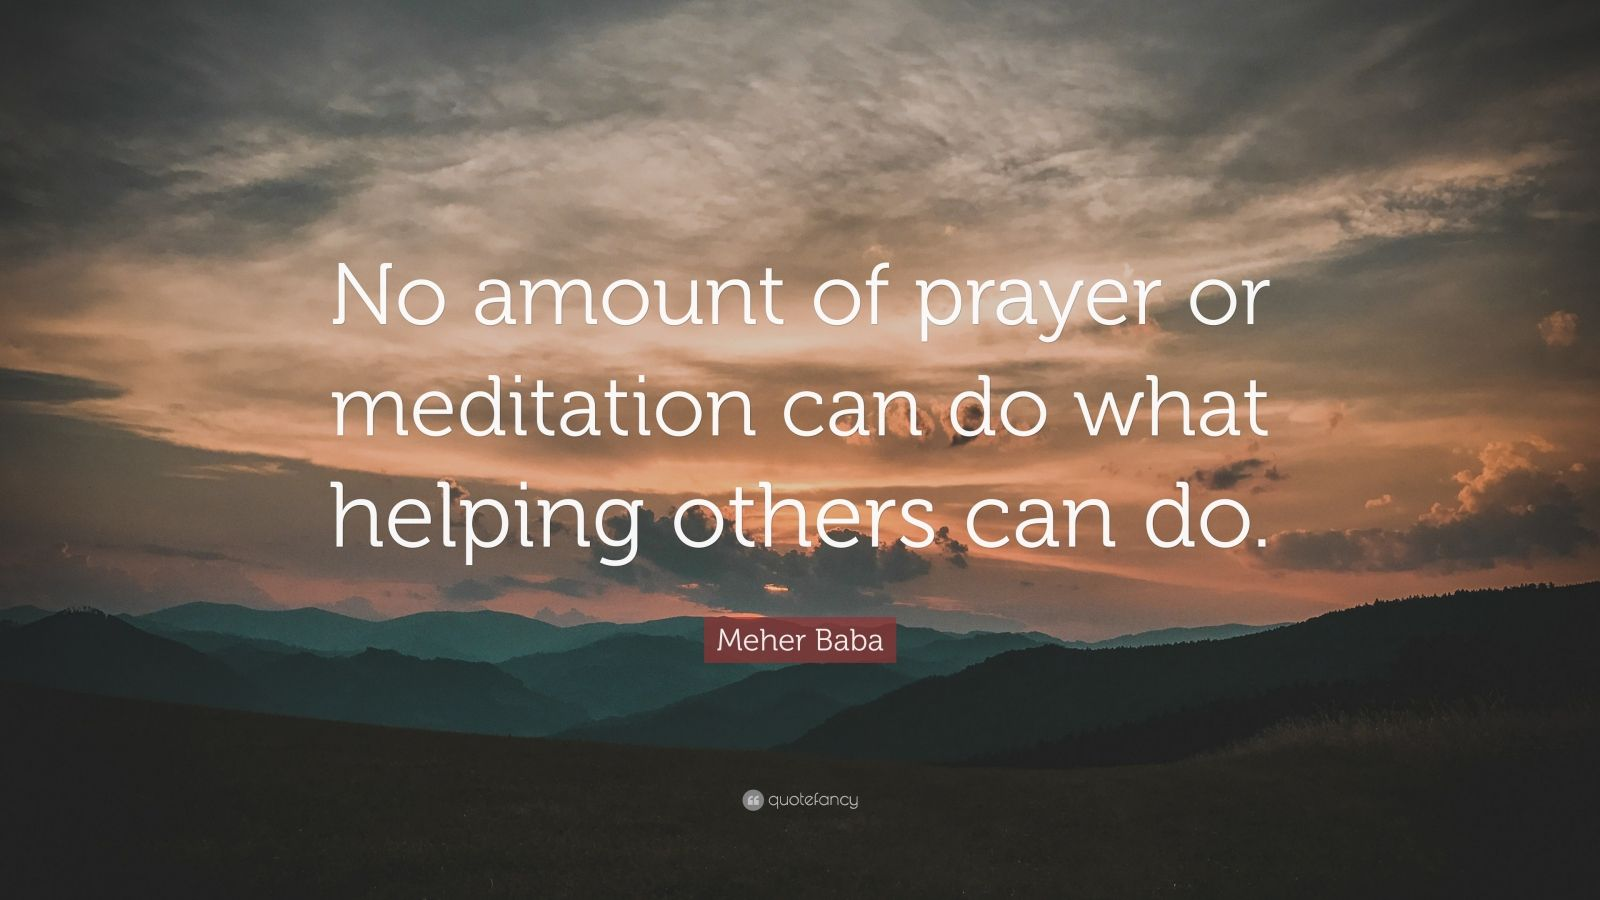 """Meher Baba Quote: """"No amount of prayer or meditation can do what helping others can do."""""""